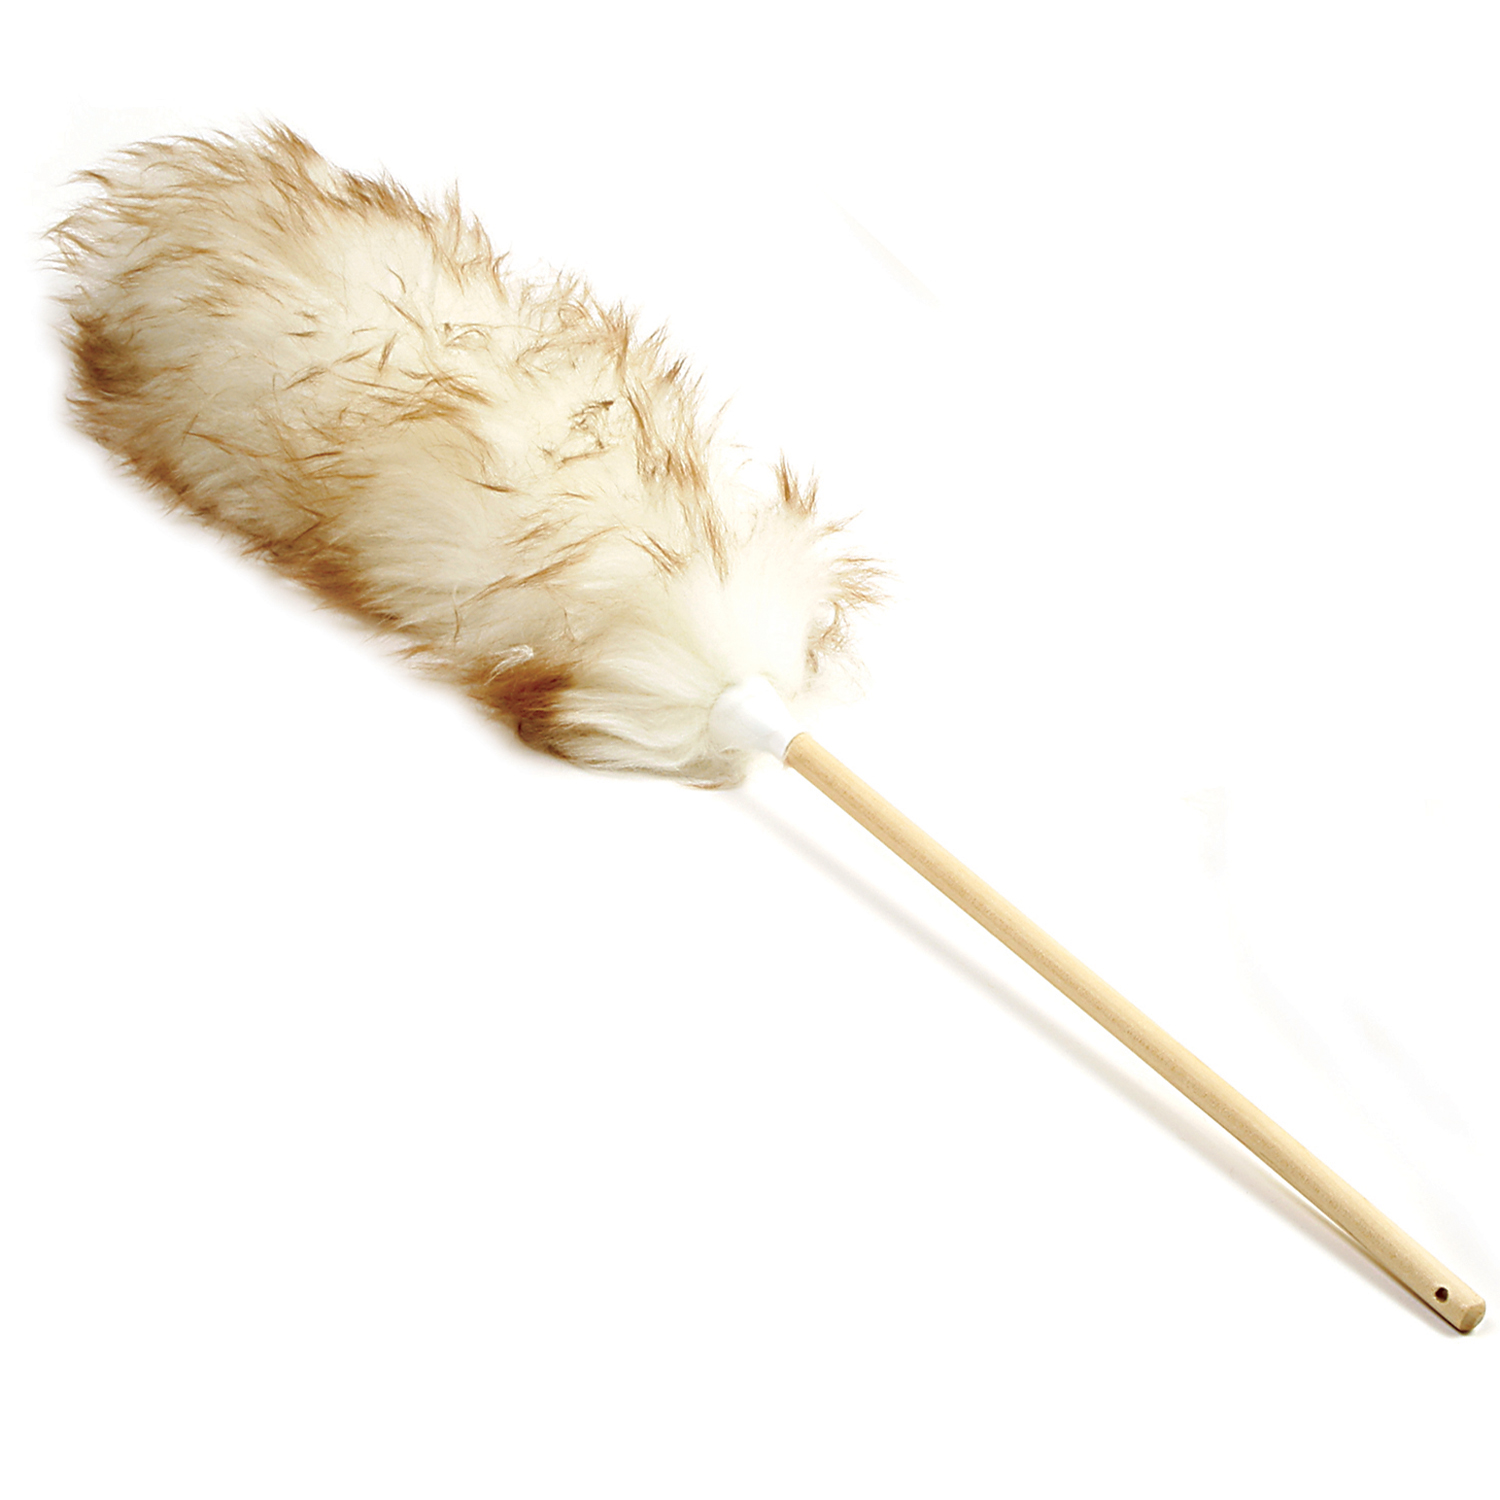 Norpro New 24 Quot Pure Lambs Wool Cobweb Duster Wood Handle